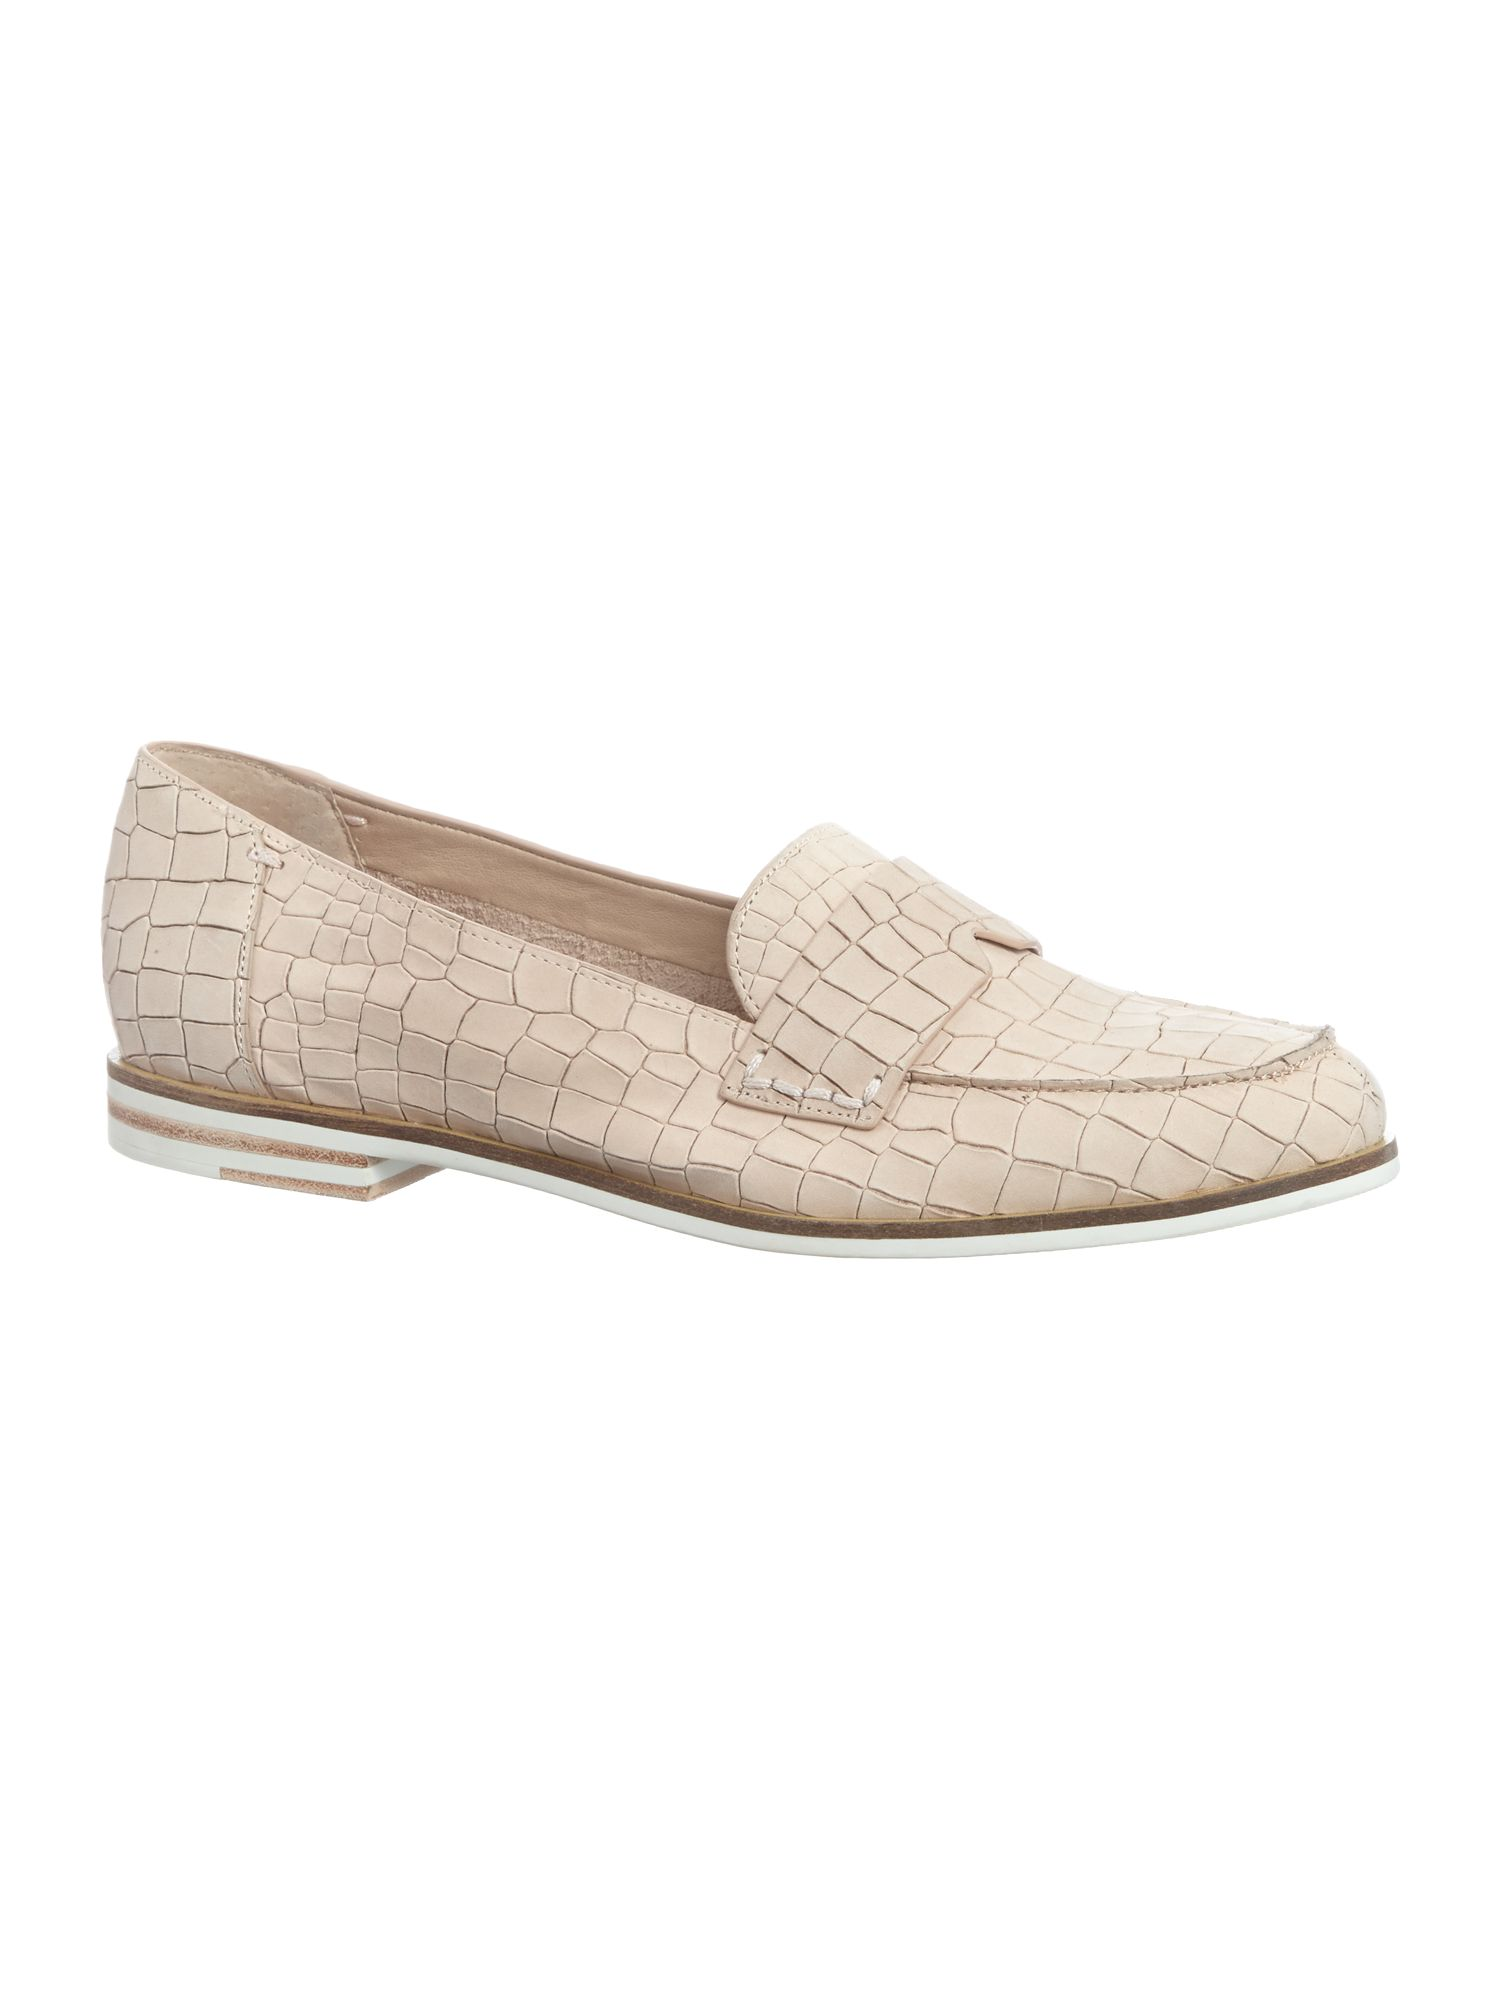 Dayle loafers